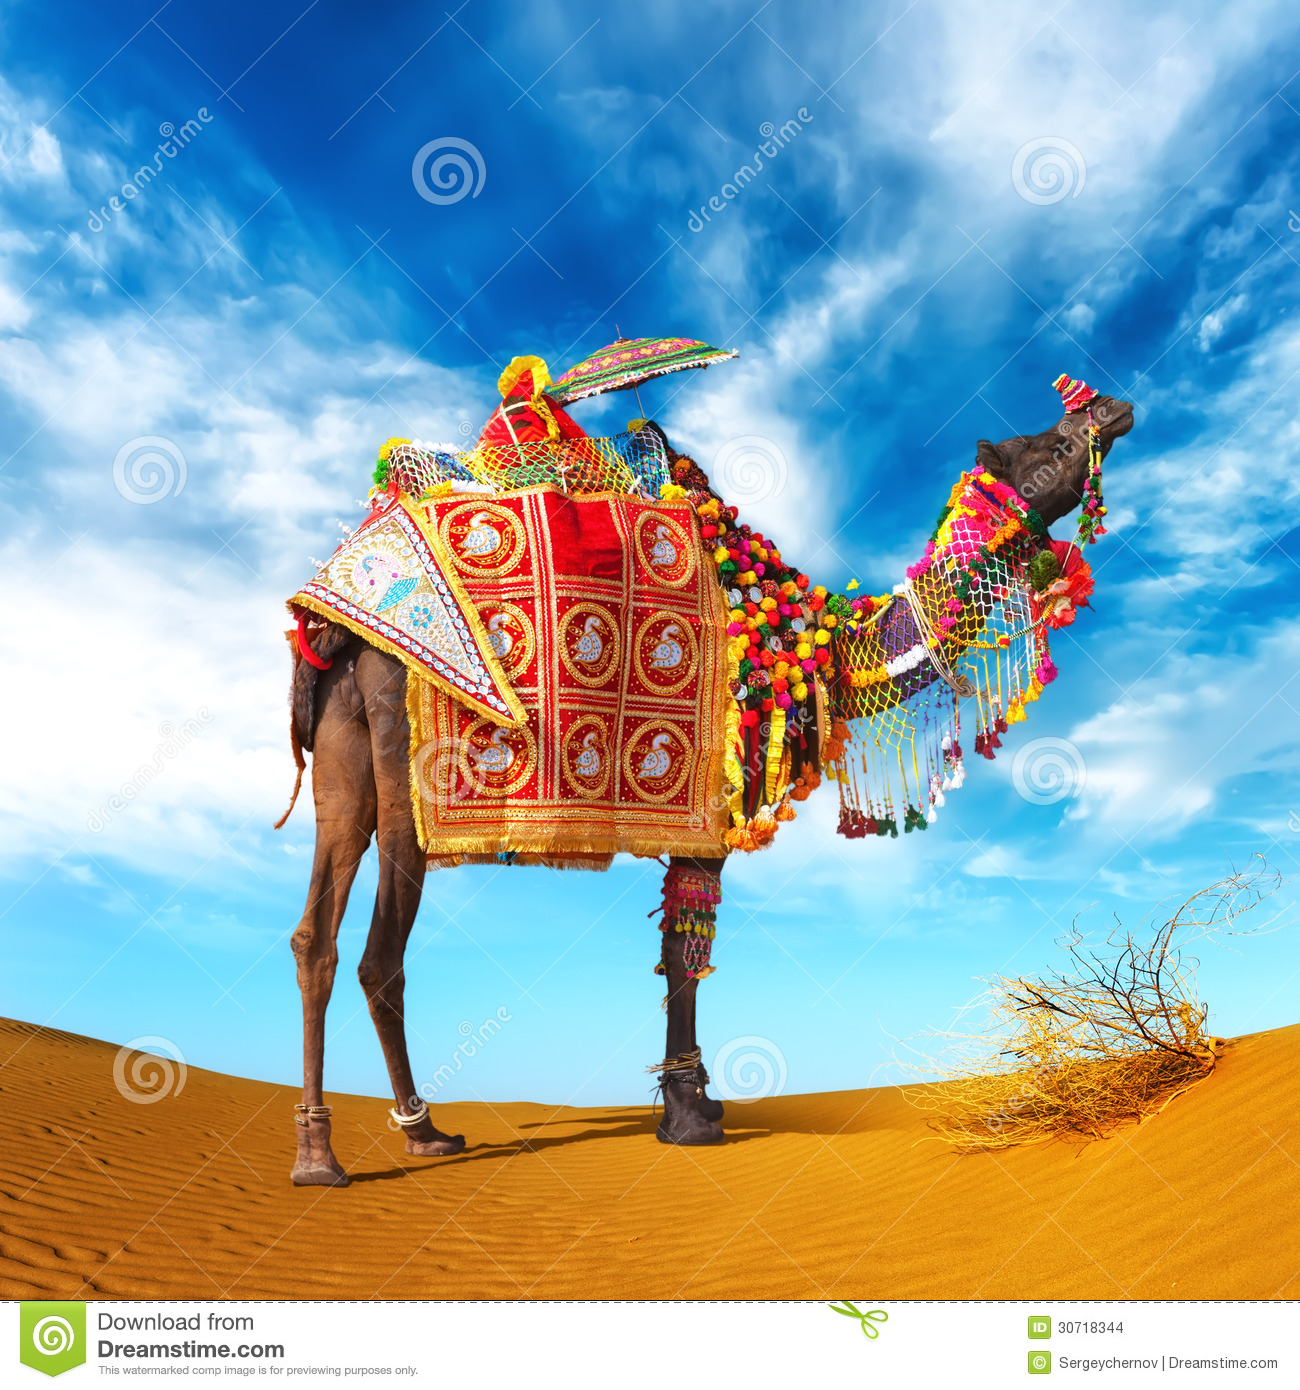 Camel In Desert Stock Photo Image Of India, Attraction -3642